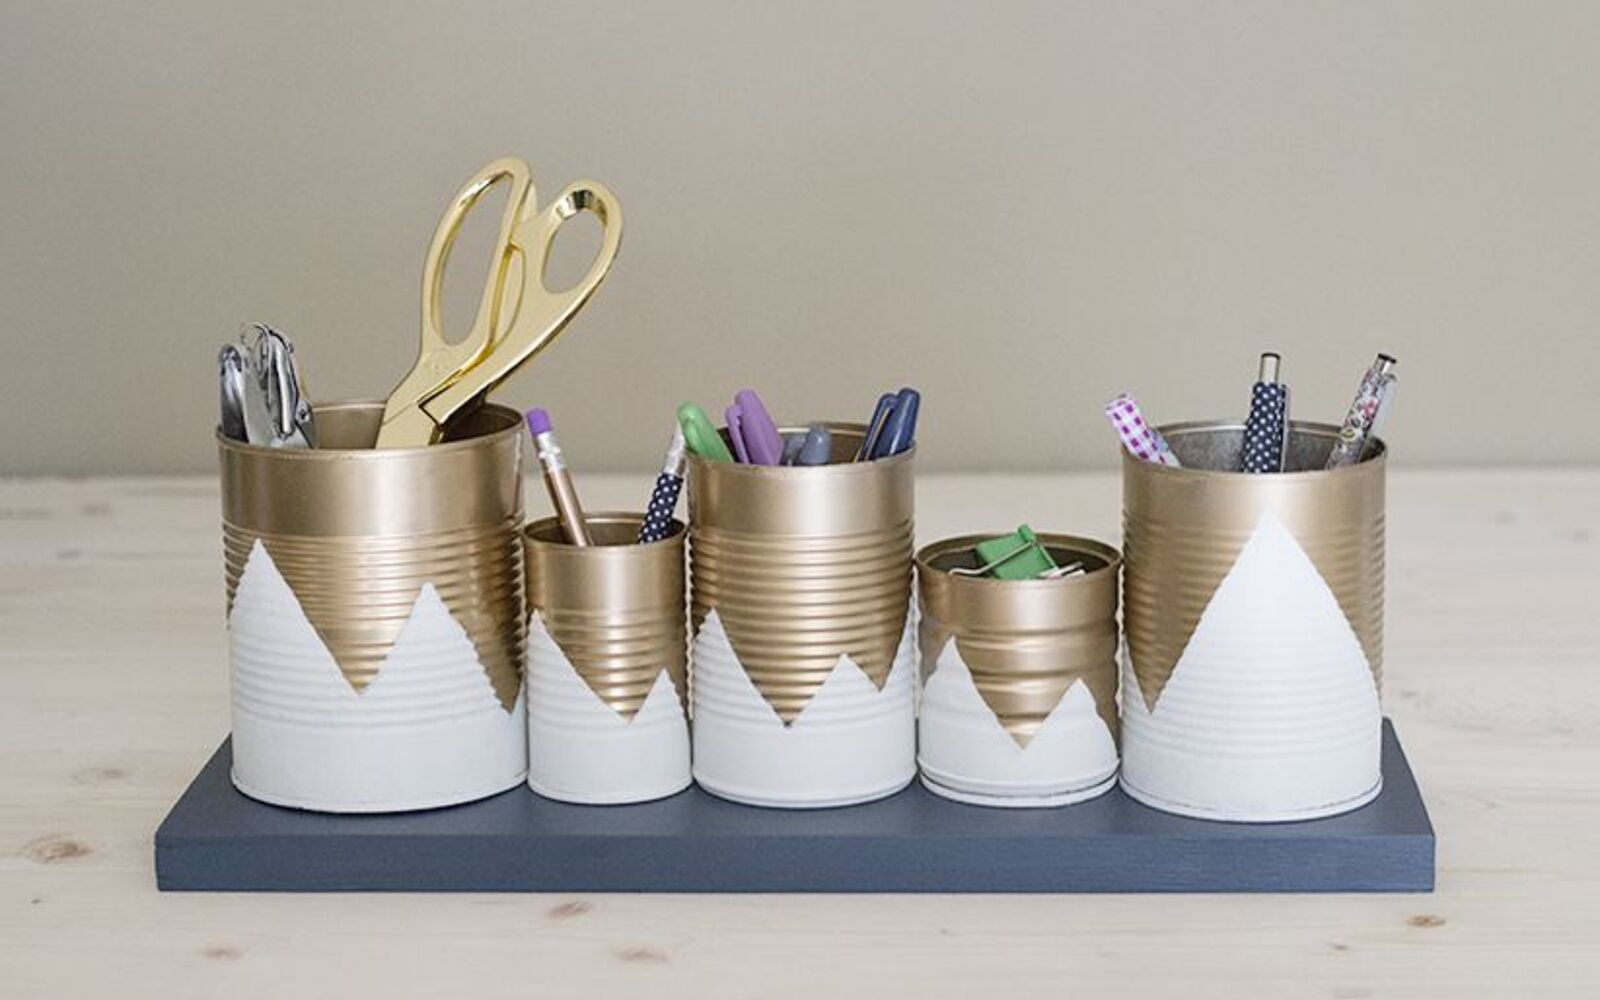 s save your old cans for these 30 home decor ideas, Glue together a desk organizer